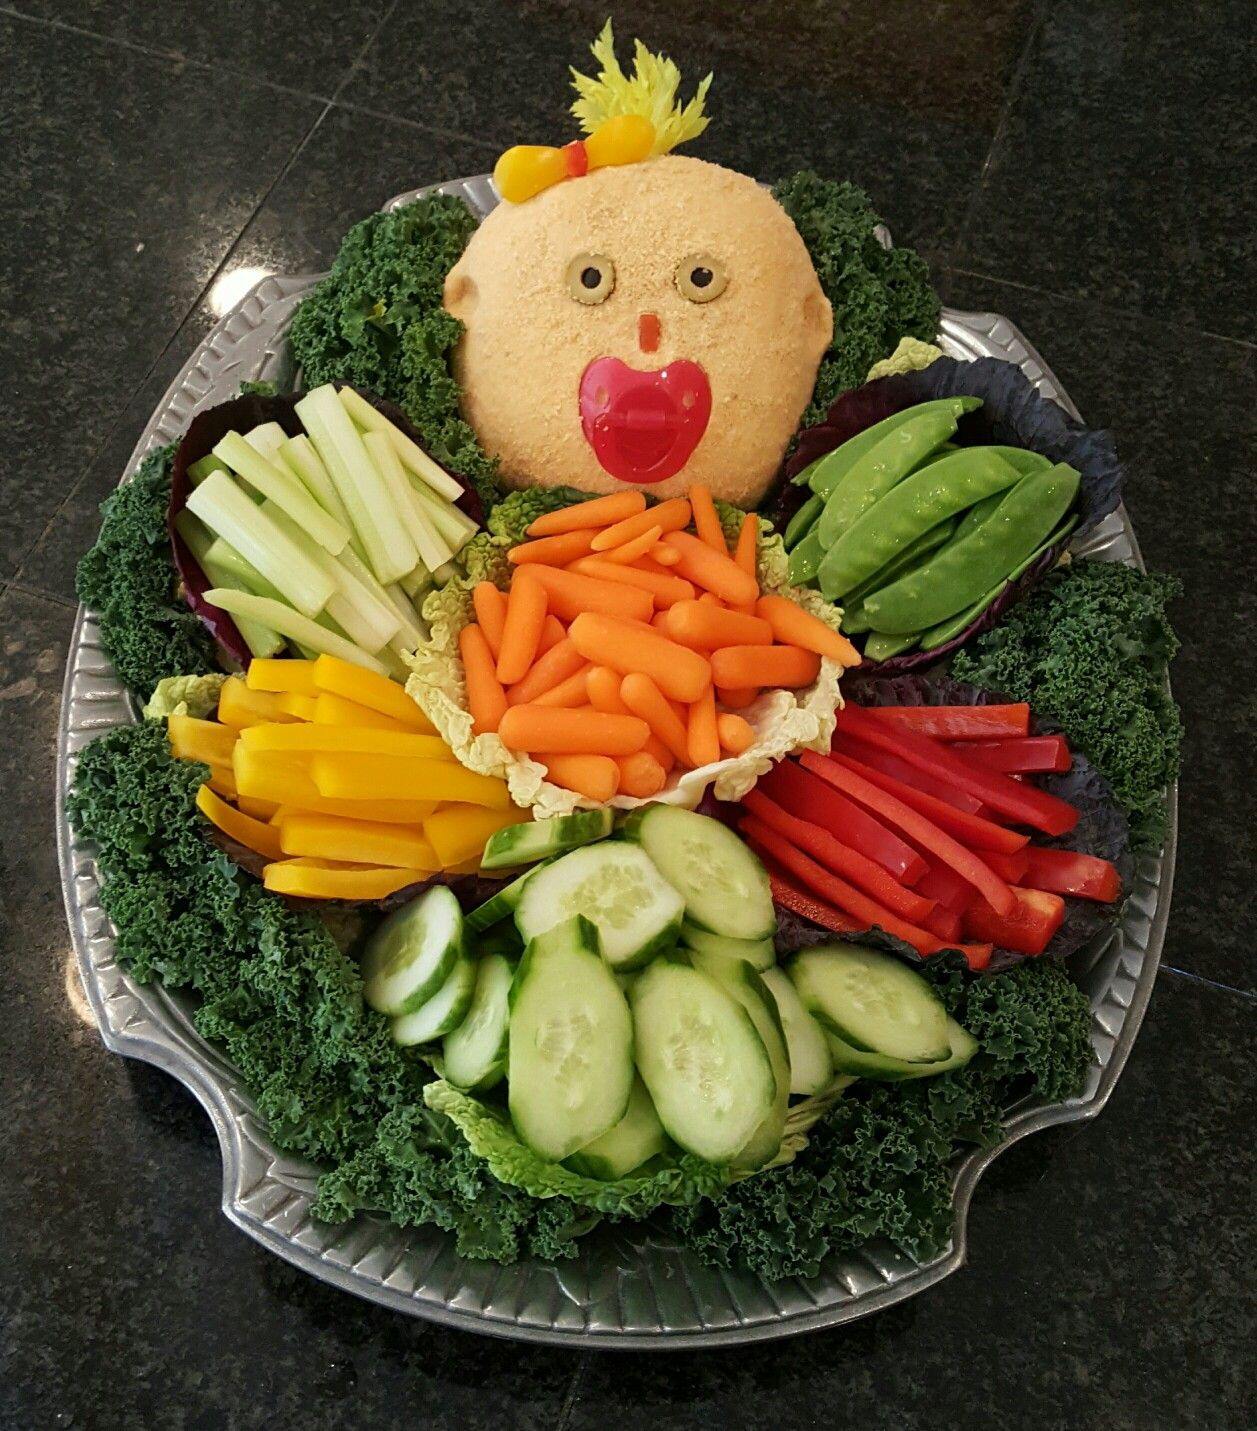 Cabbage Patch Veggie Tray With Baby Face Cheese Ball.